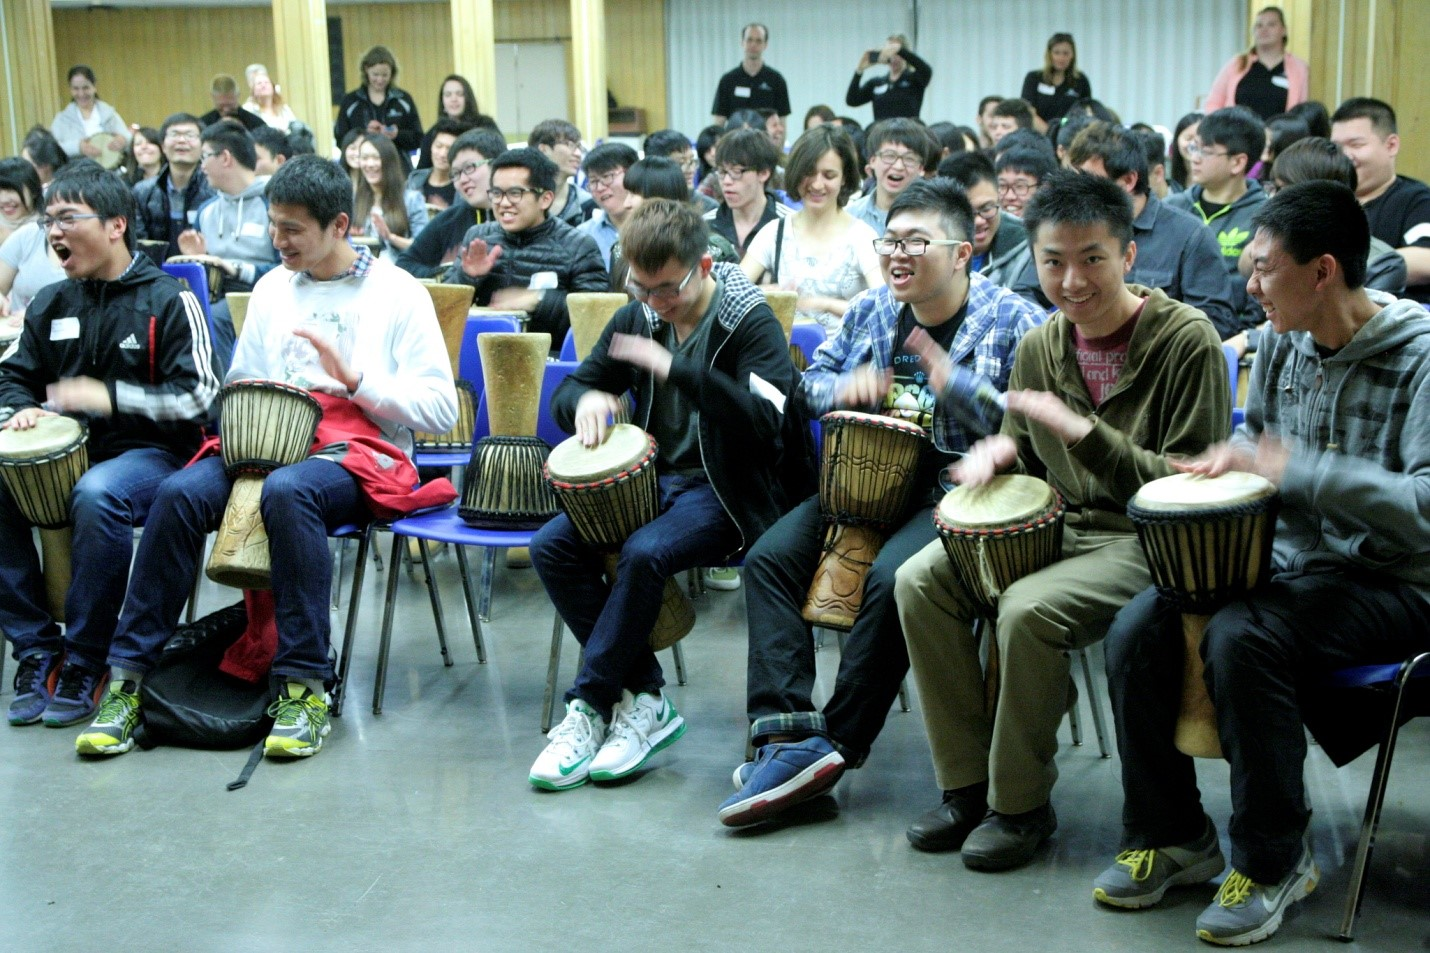 CultureWorks students play the bongos during the opening ceremonies at the London campus